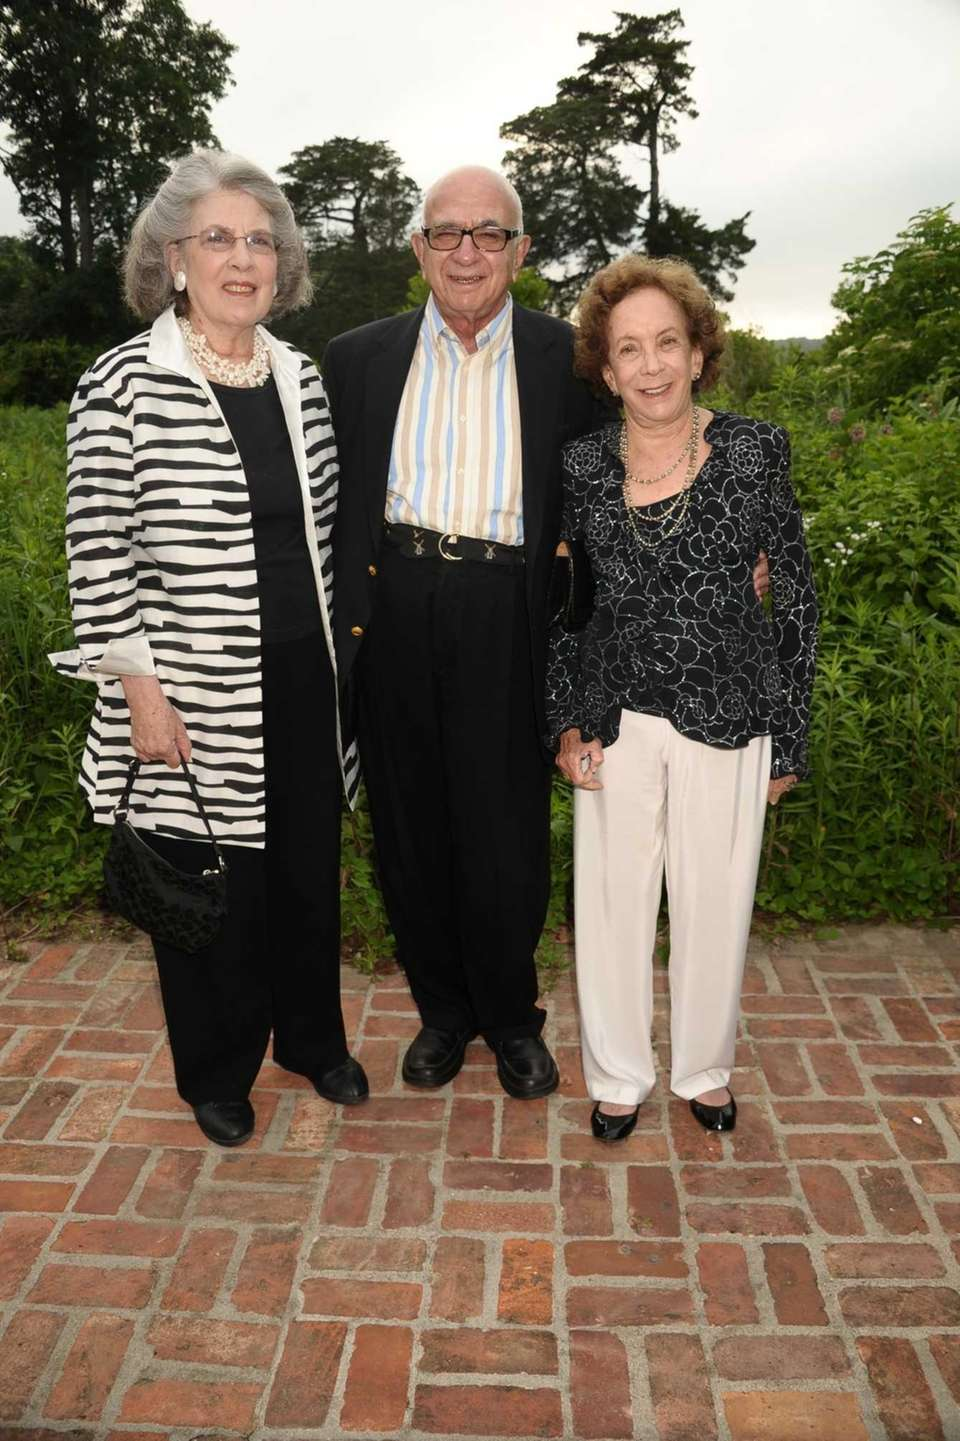 Ellen Marcus, Jim Marcus, and Barabara Slifka attend